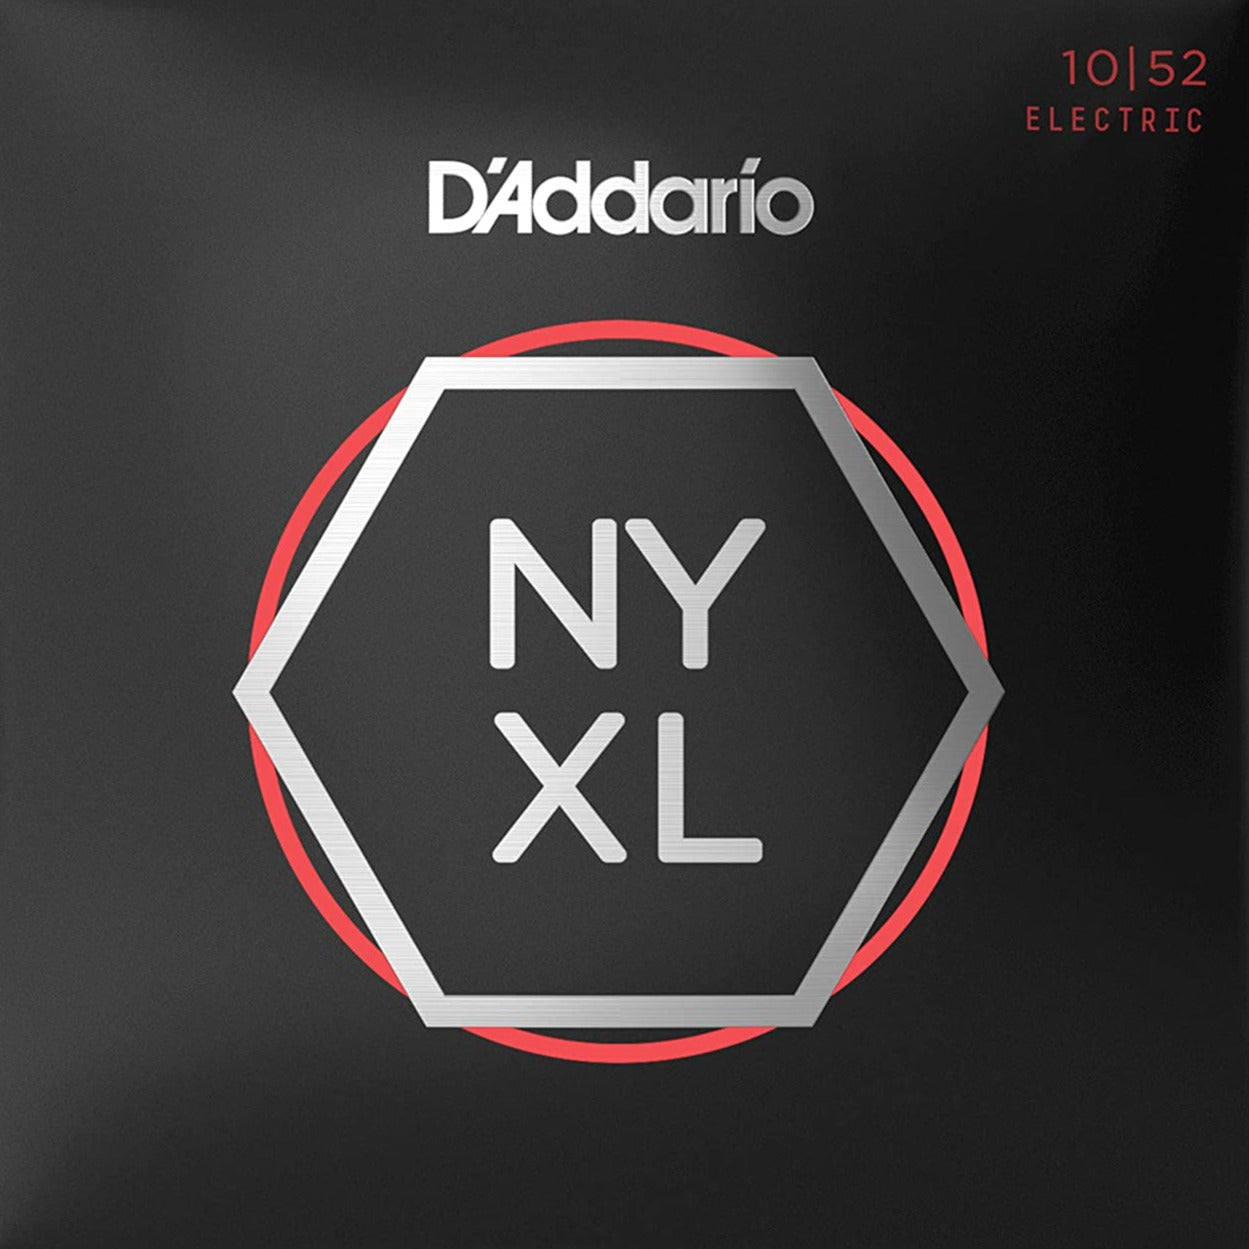 D'Addario NYXL1052 Electric Guitar Strings - Light Top / Heavy Bottom - 10-52